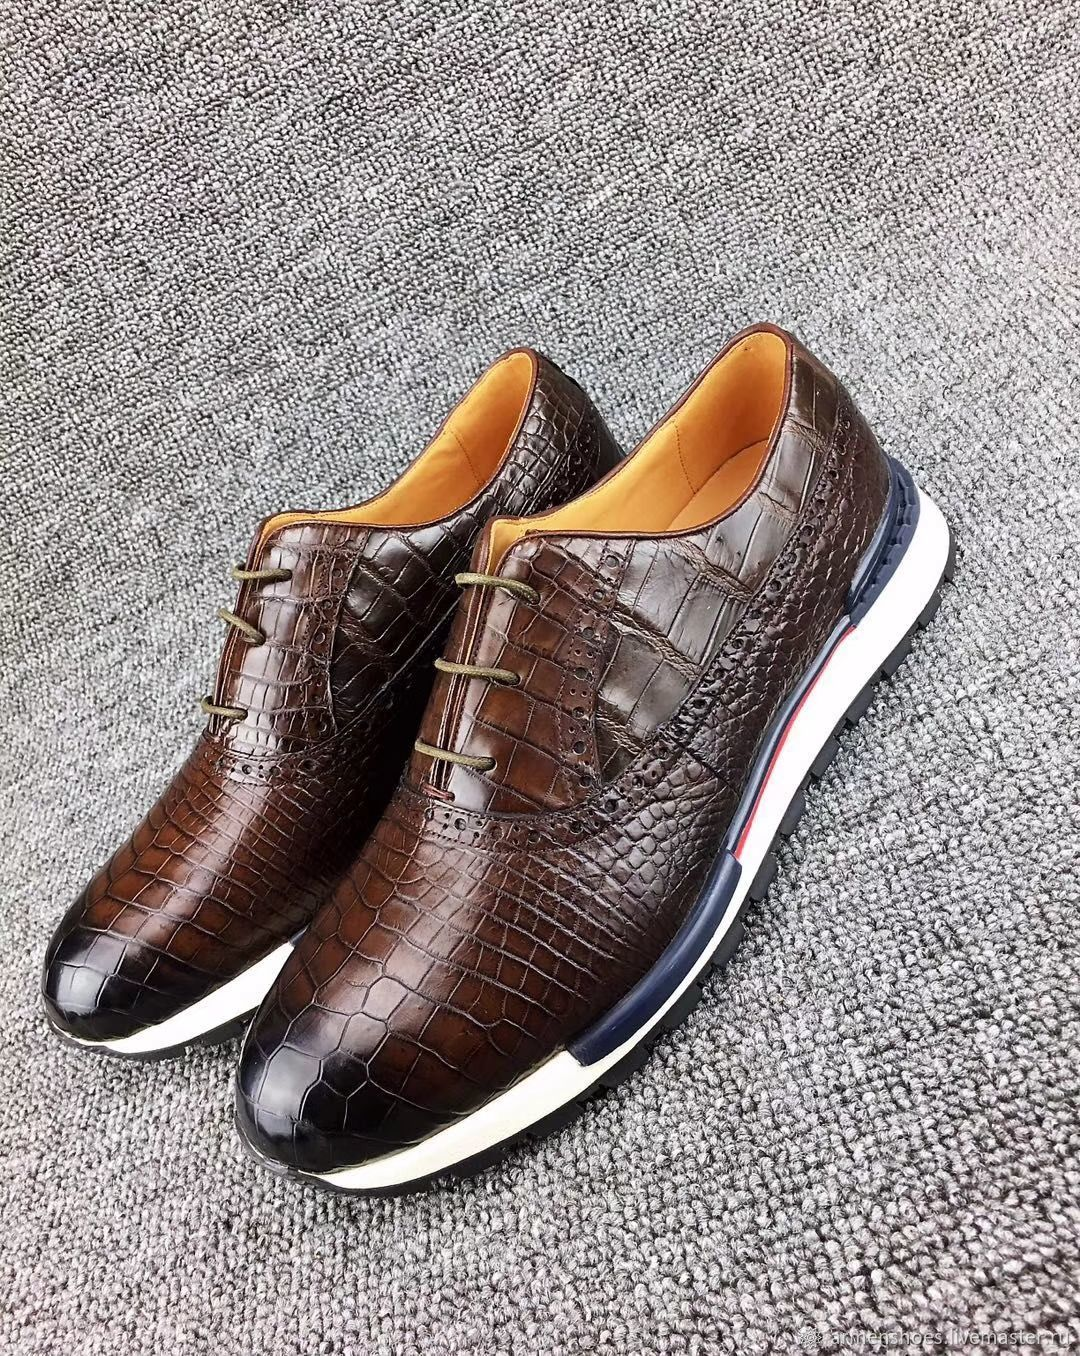 Sneakers made of genuine crocodile leather, in brown color!, Sneakers, Tosno,  Фото №1